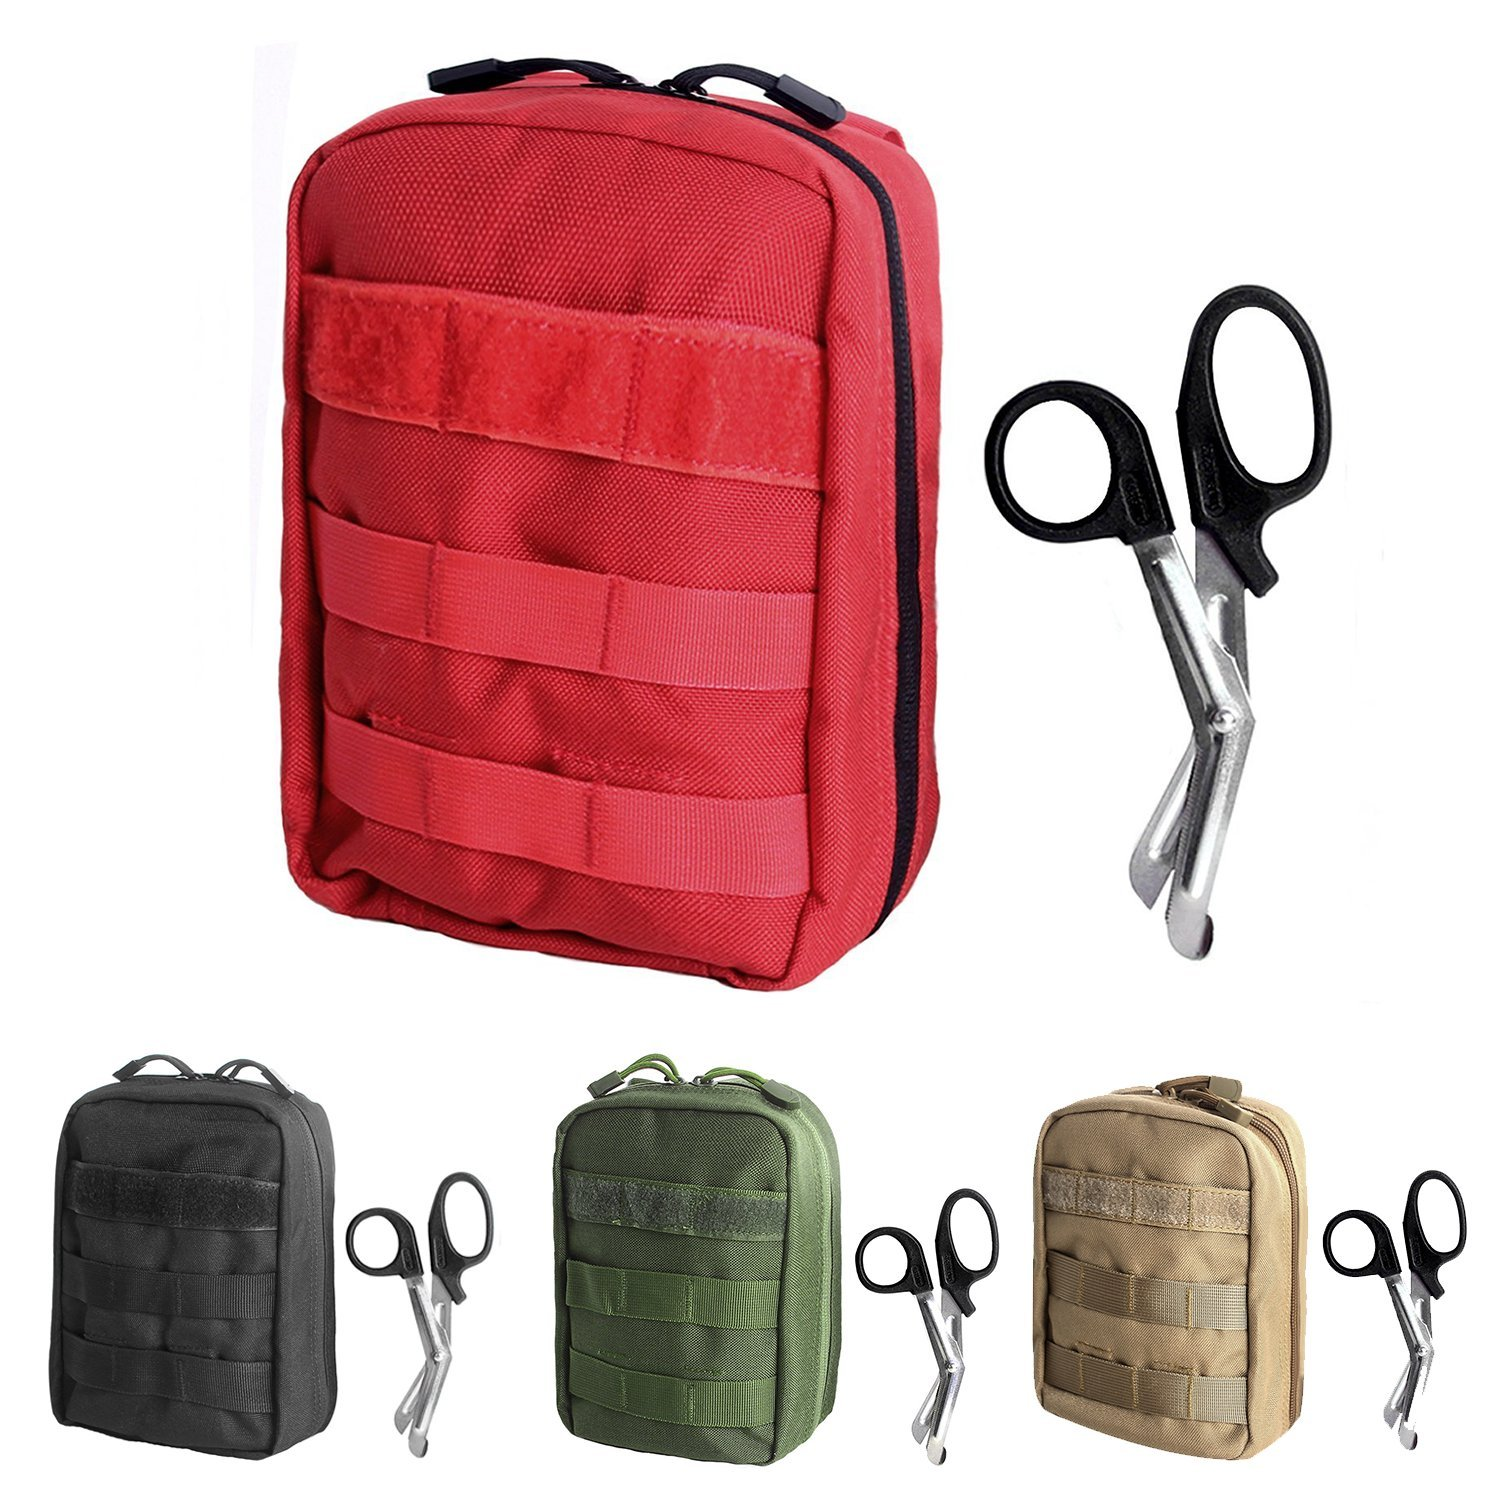 Tactical MOLLE EMT Pouch Medical Utility Bag 1000D Nylon with First Aid Patch and Shear (Red 3)